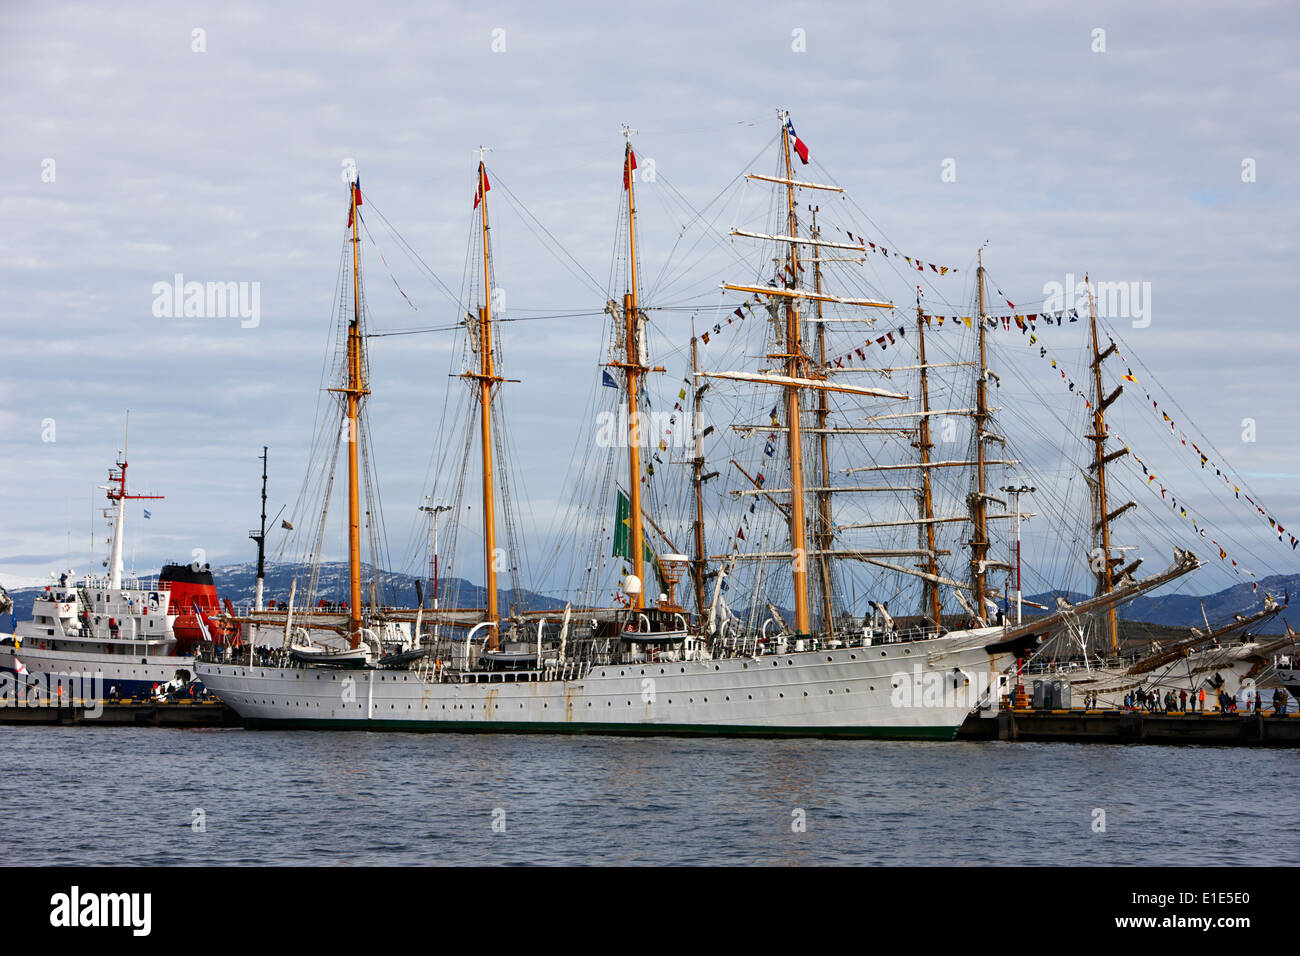 chilean navy training sail ship esmeralda moored in Ushuaia Argentina - Stock Image